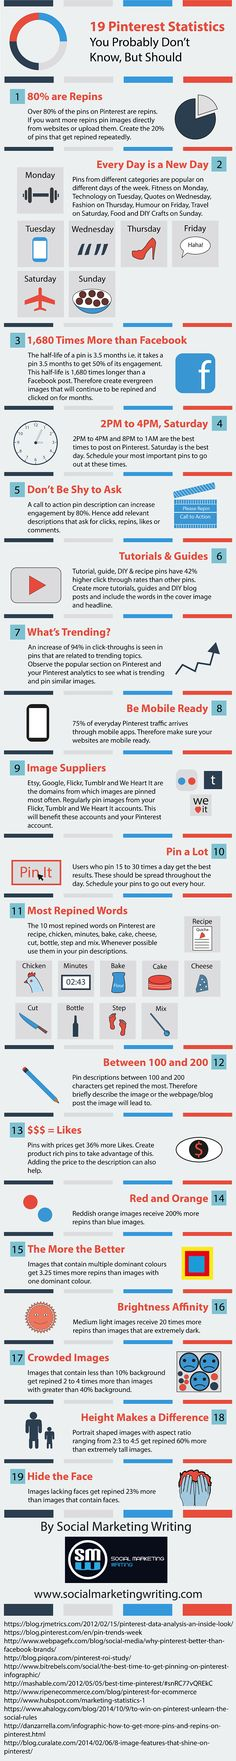 19-Pinterest-Statistics-You-Probably-Don't-Know-But-Should-Infographic